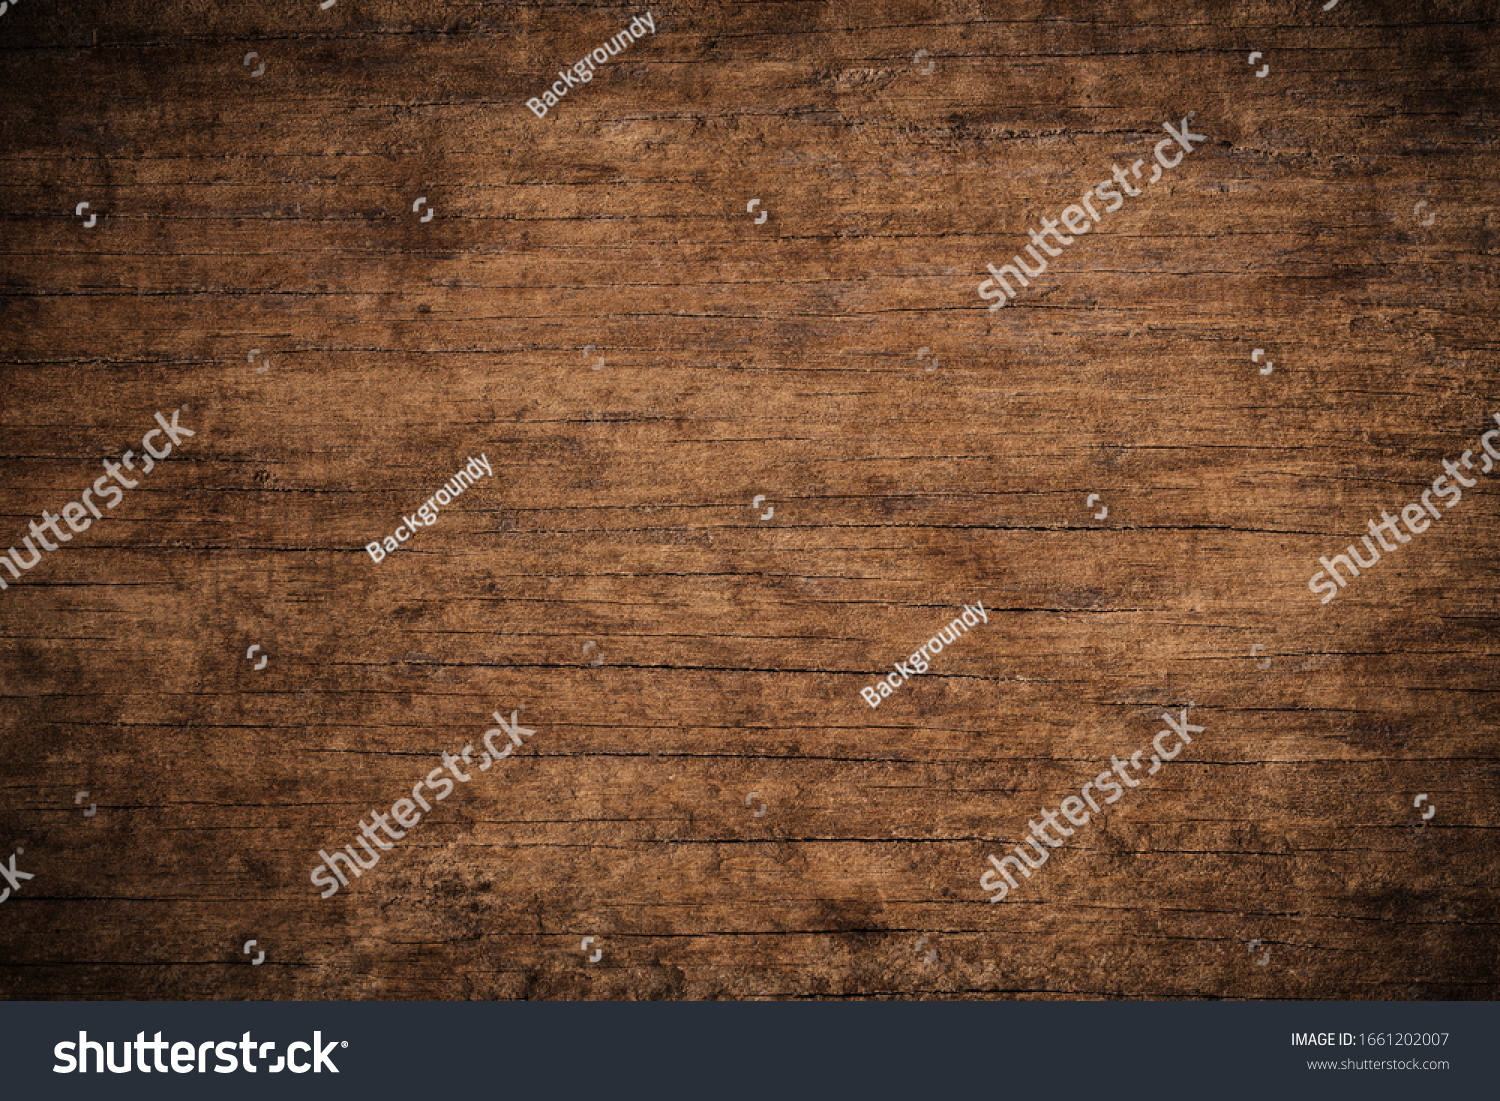 Old grunge dark textured wooden background,The surface of the old brown wood texture,top view brown teak wood paneling #1661202007